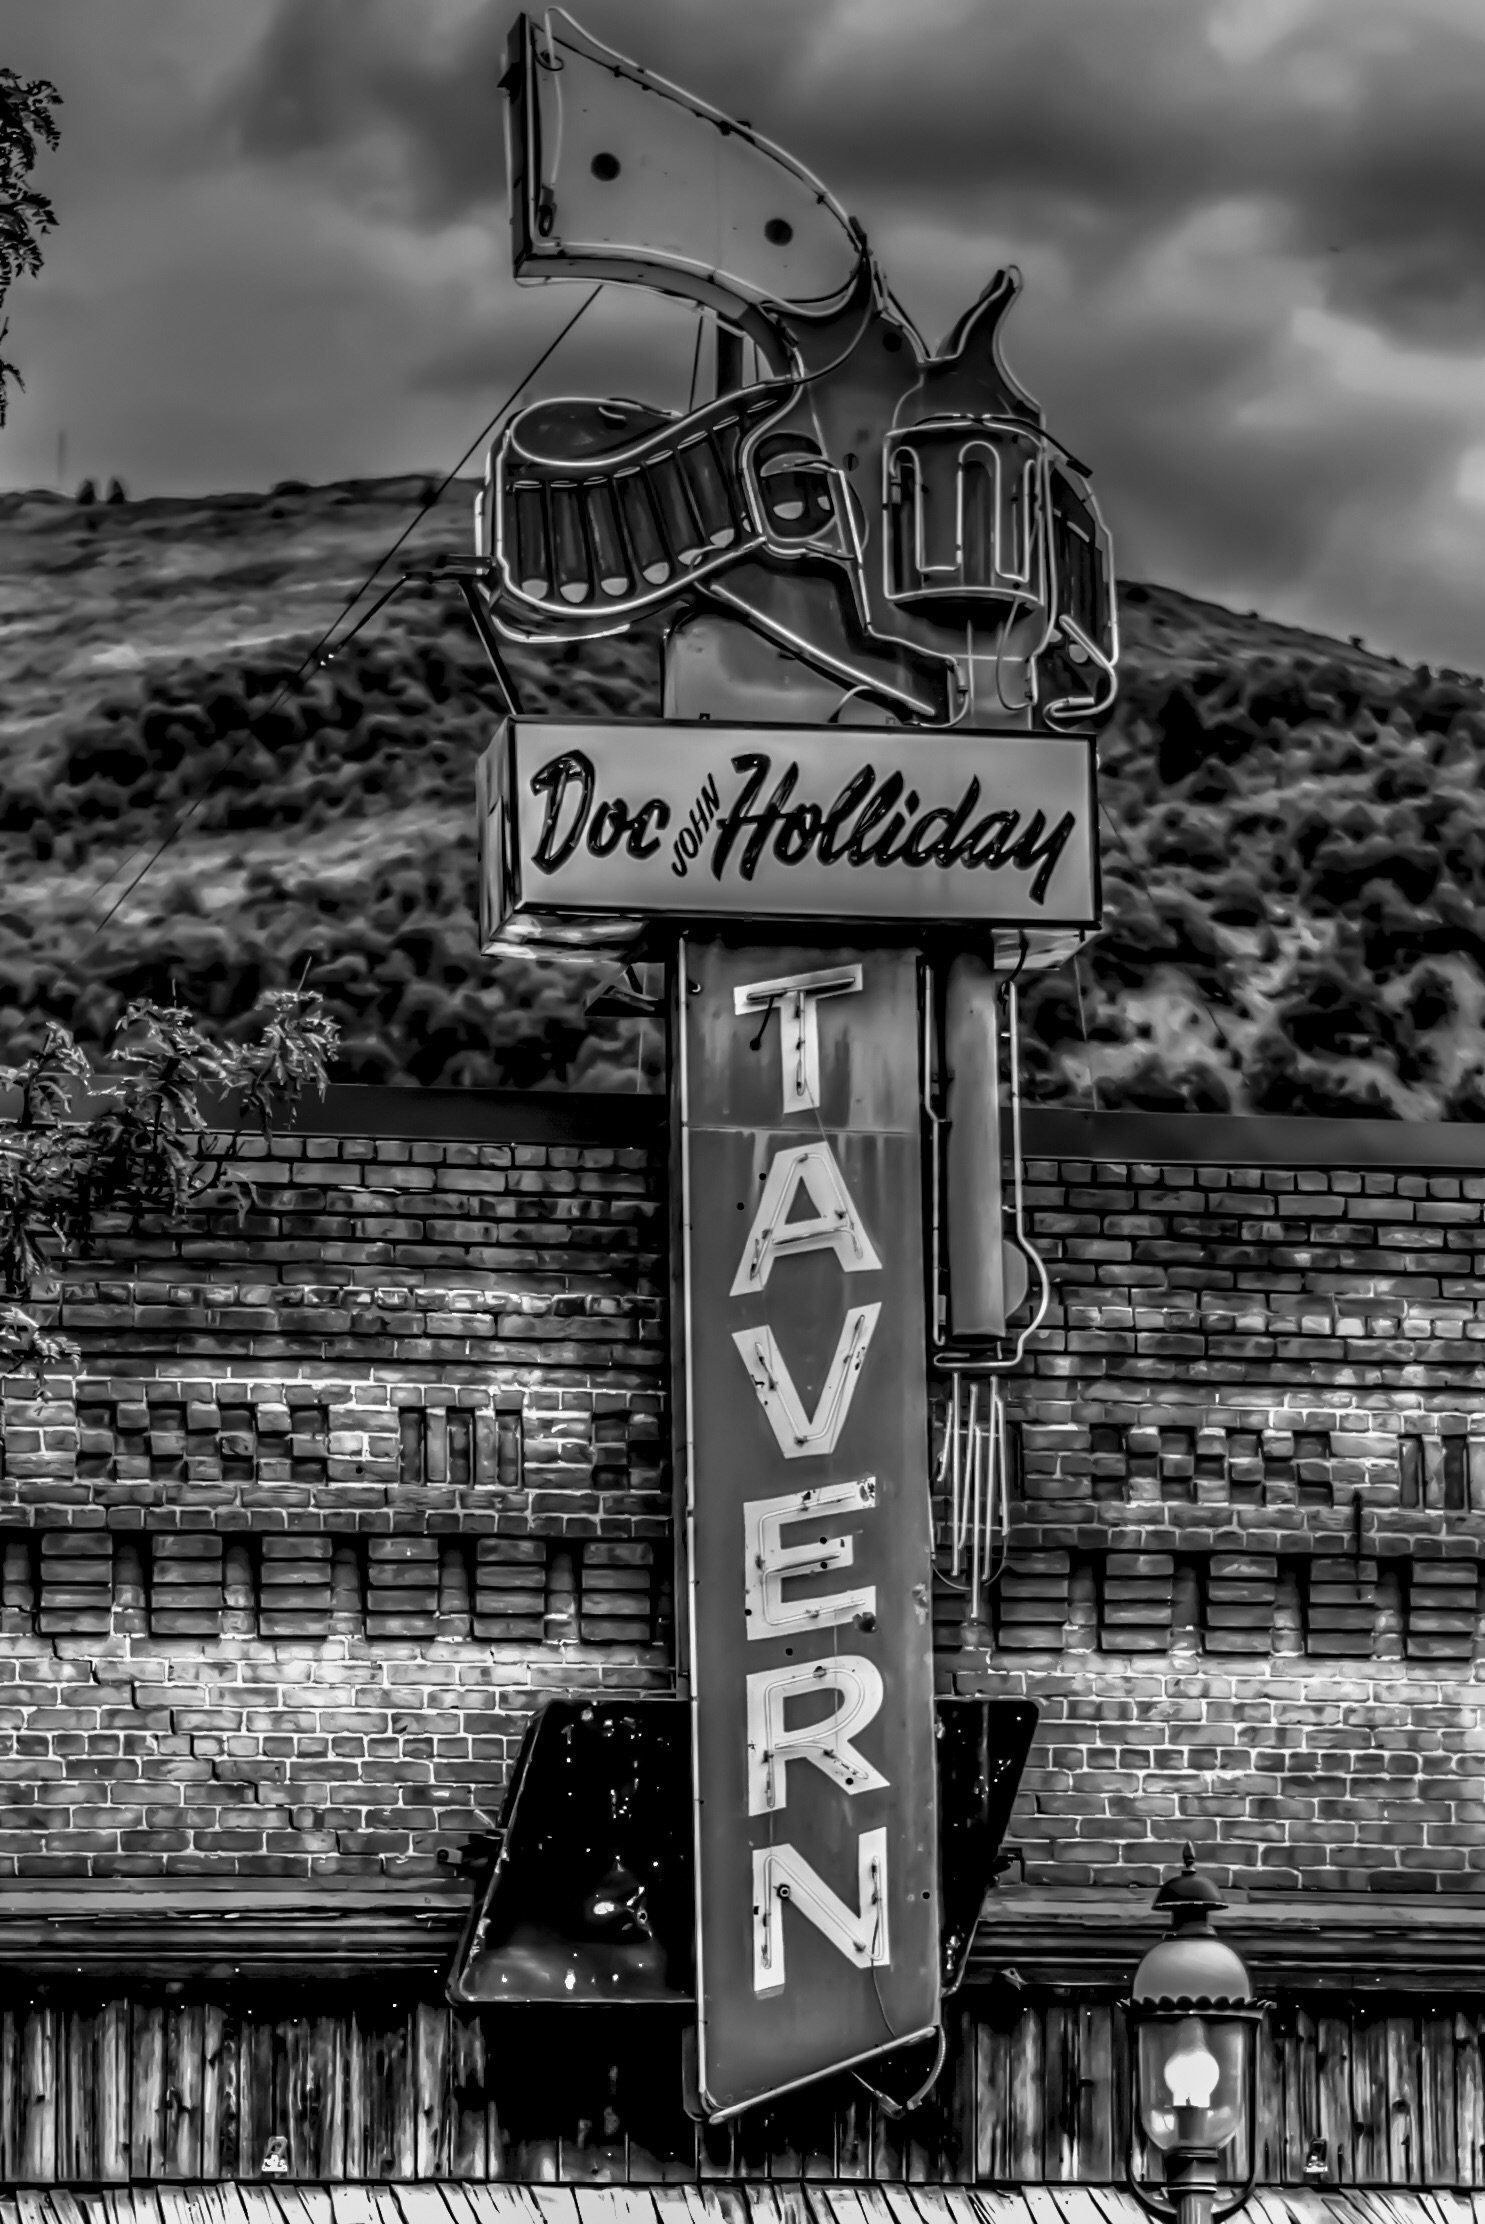 image.jpg - Doc Holiday Tavern, Glenwood Springs, CO in Black and White by Dennis Rose